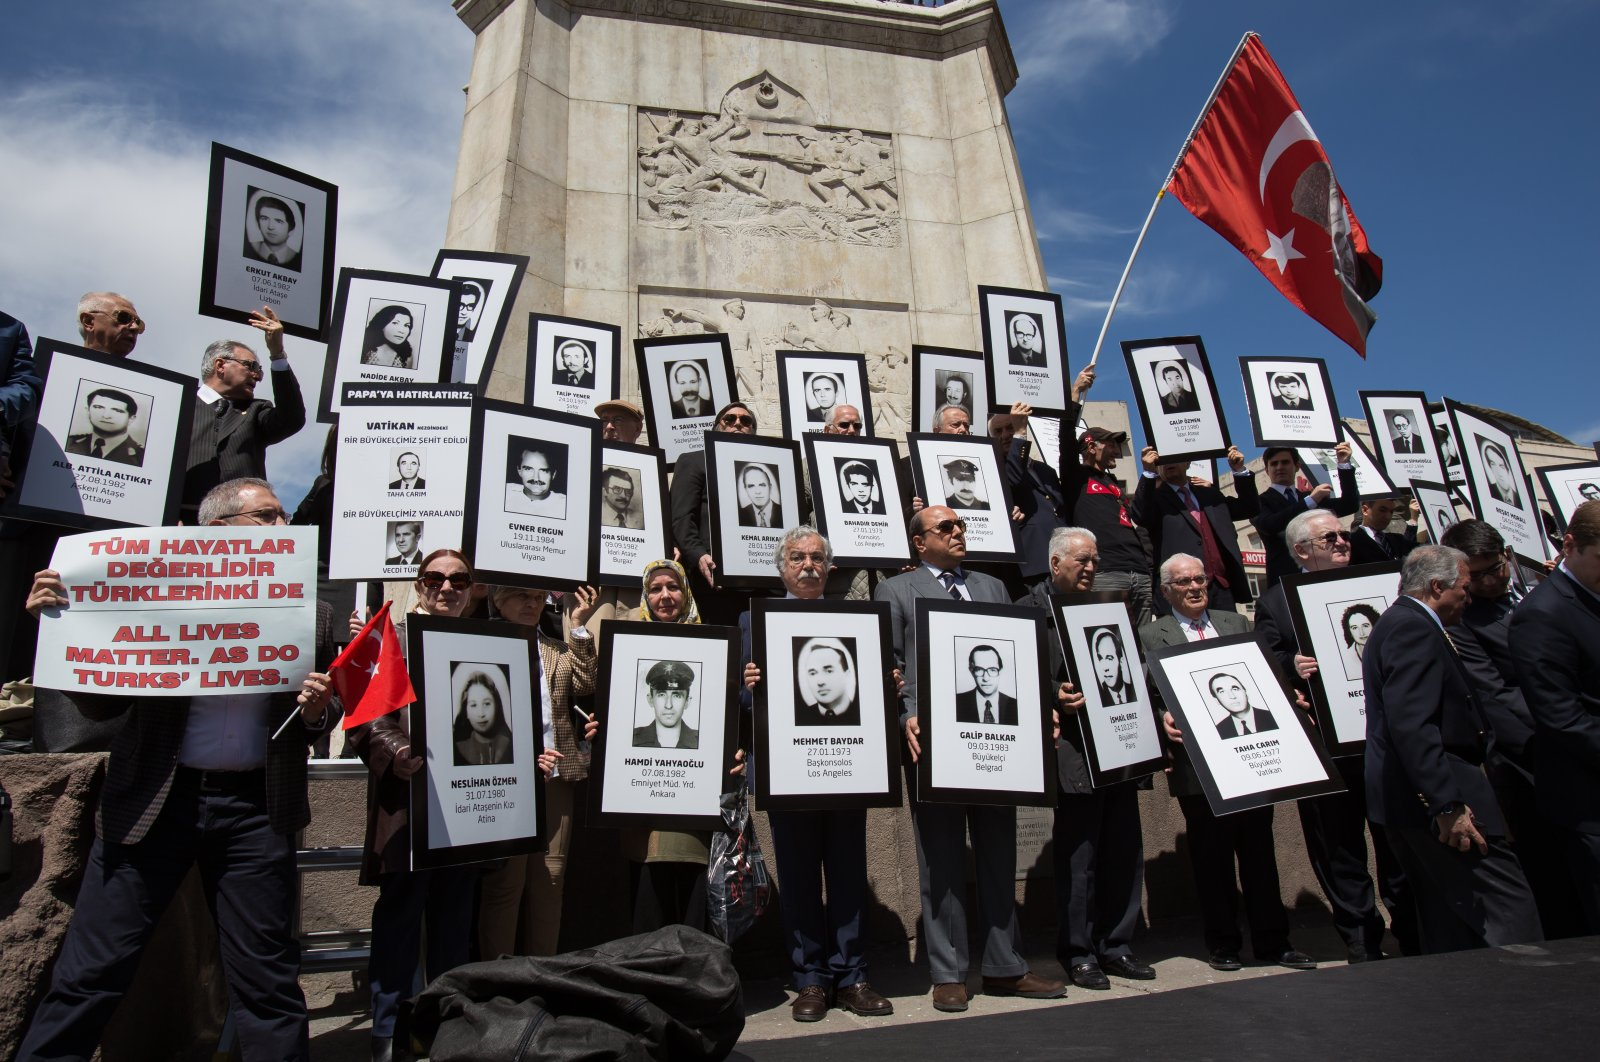 """A retired diplomat holds a placard reading """"All lives matters, as do Turks lives,"""" among others with portraits of victims of Armenian terrorist attacks in front of Atatürk Monument in Ulus Square, Ankara, Turkey, on April 4, 2015. (Getty Images Photo)"""